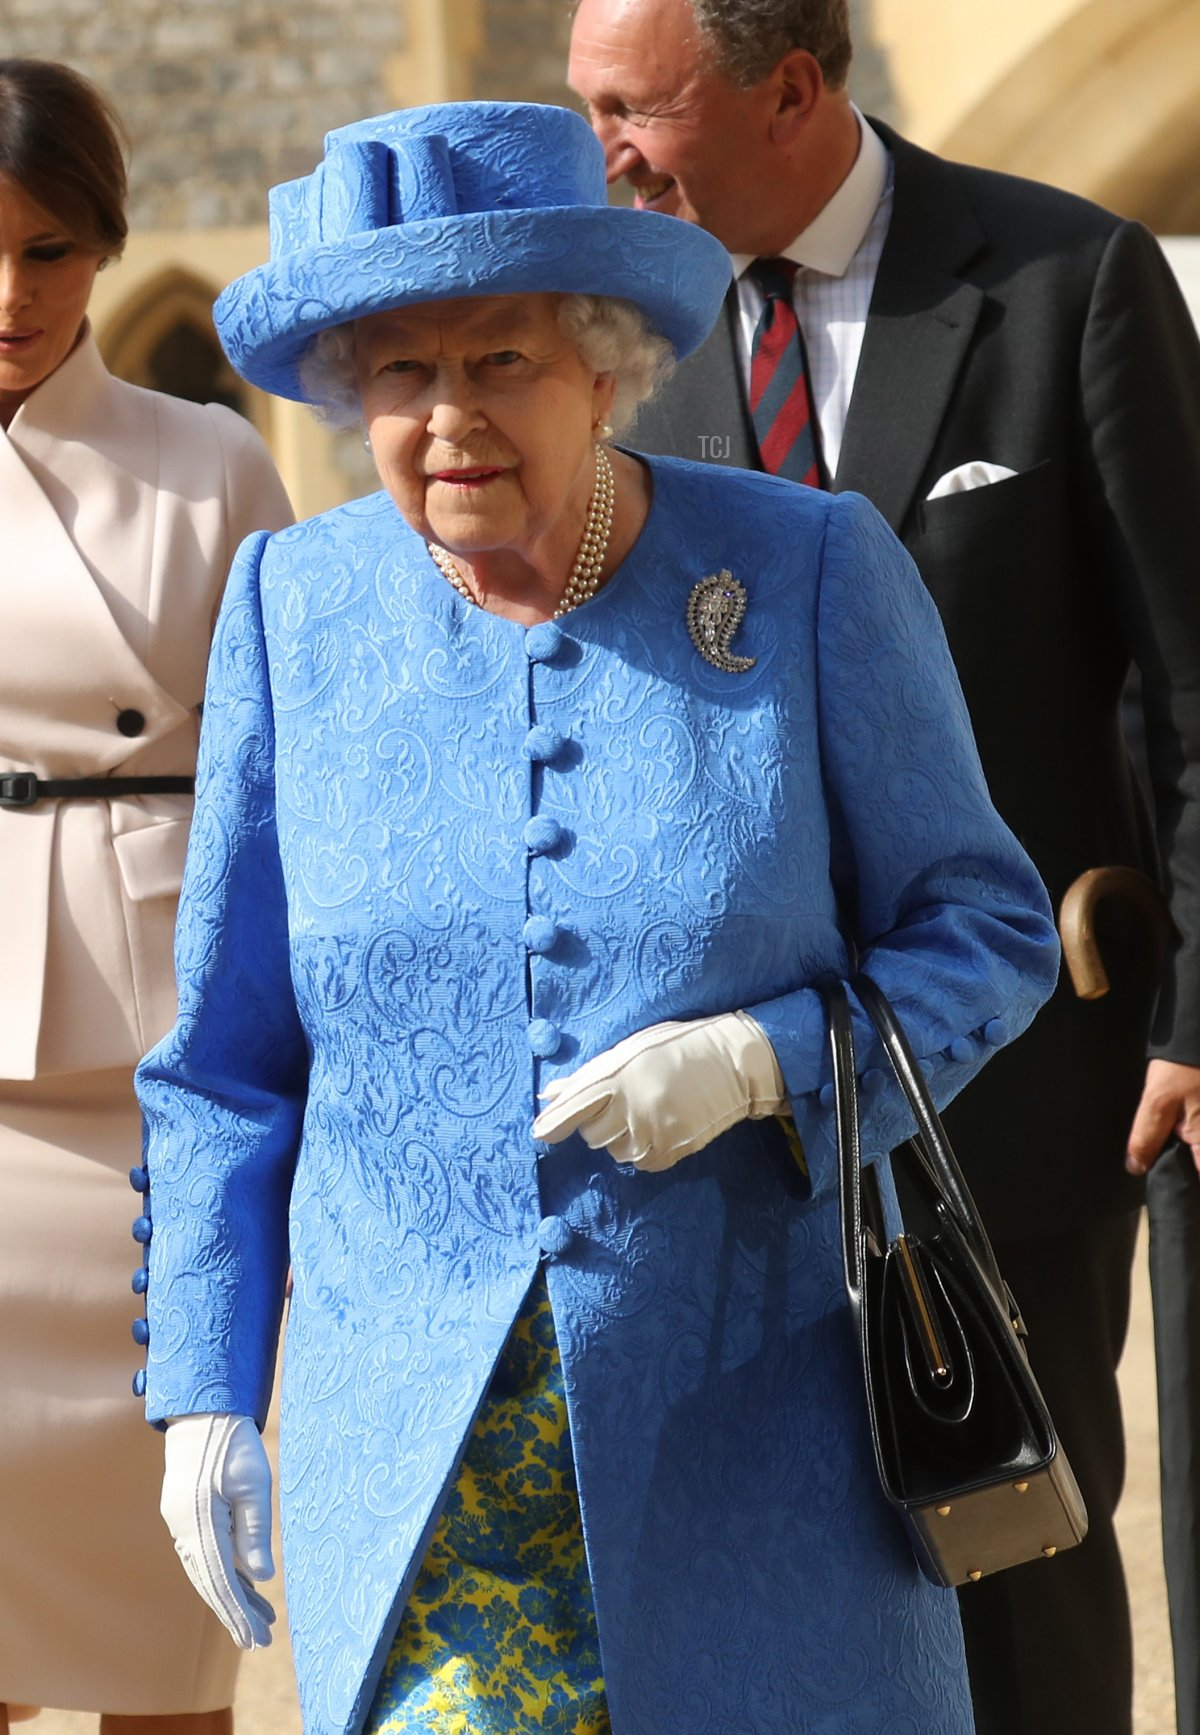 US President Donald Trump and Britain's Queen Elizabeth II leave the Quadrangle after inspecting a Guard of Honour at Windsor Castle in Windsor, west of London, on July 13, 2018 on the second day of Trump's UK visit